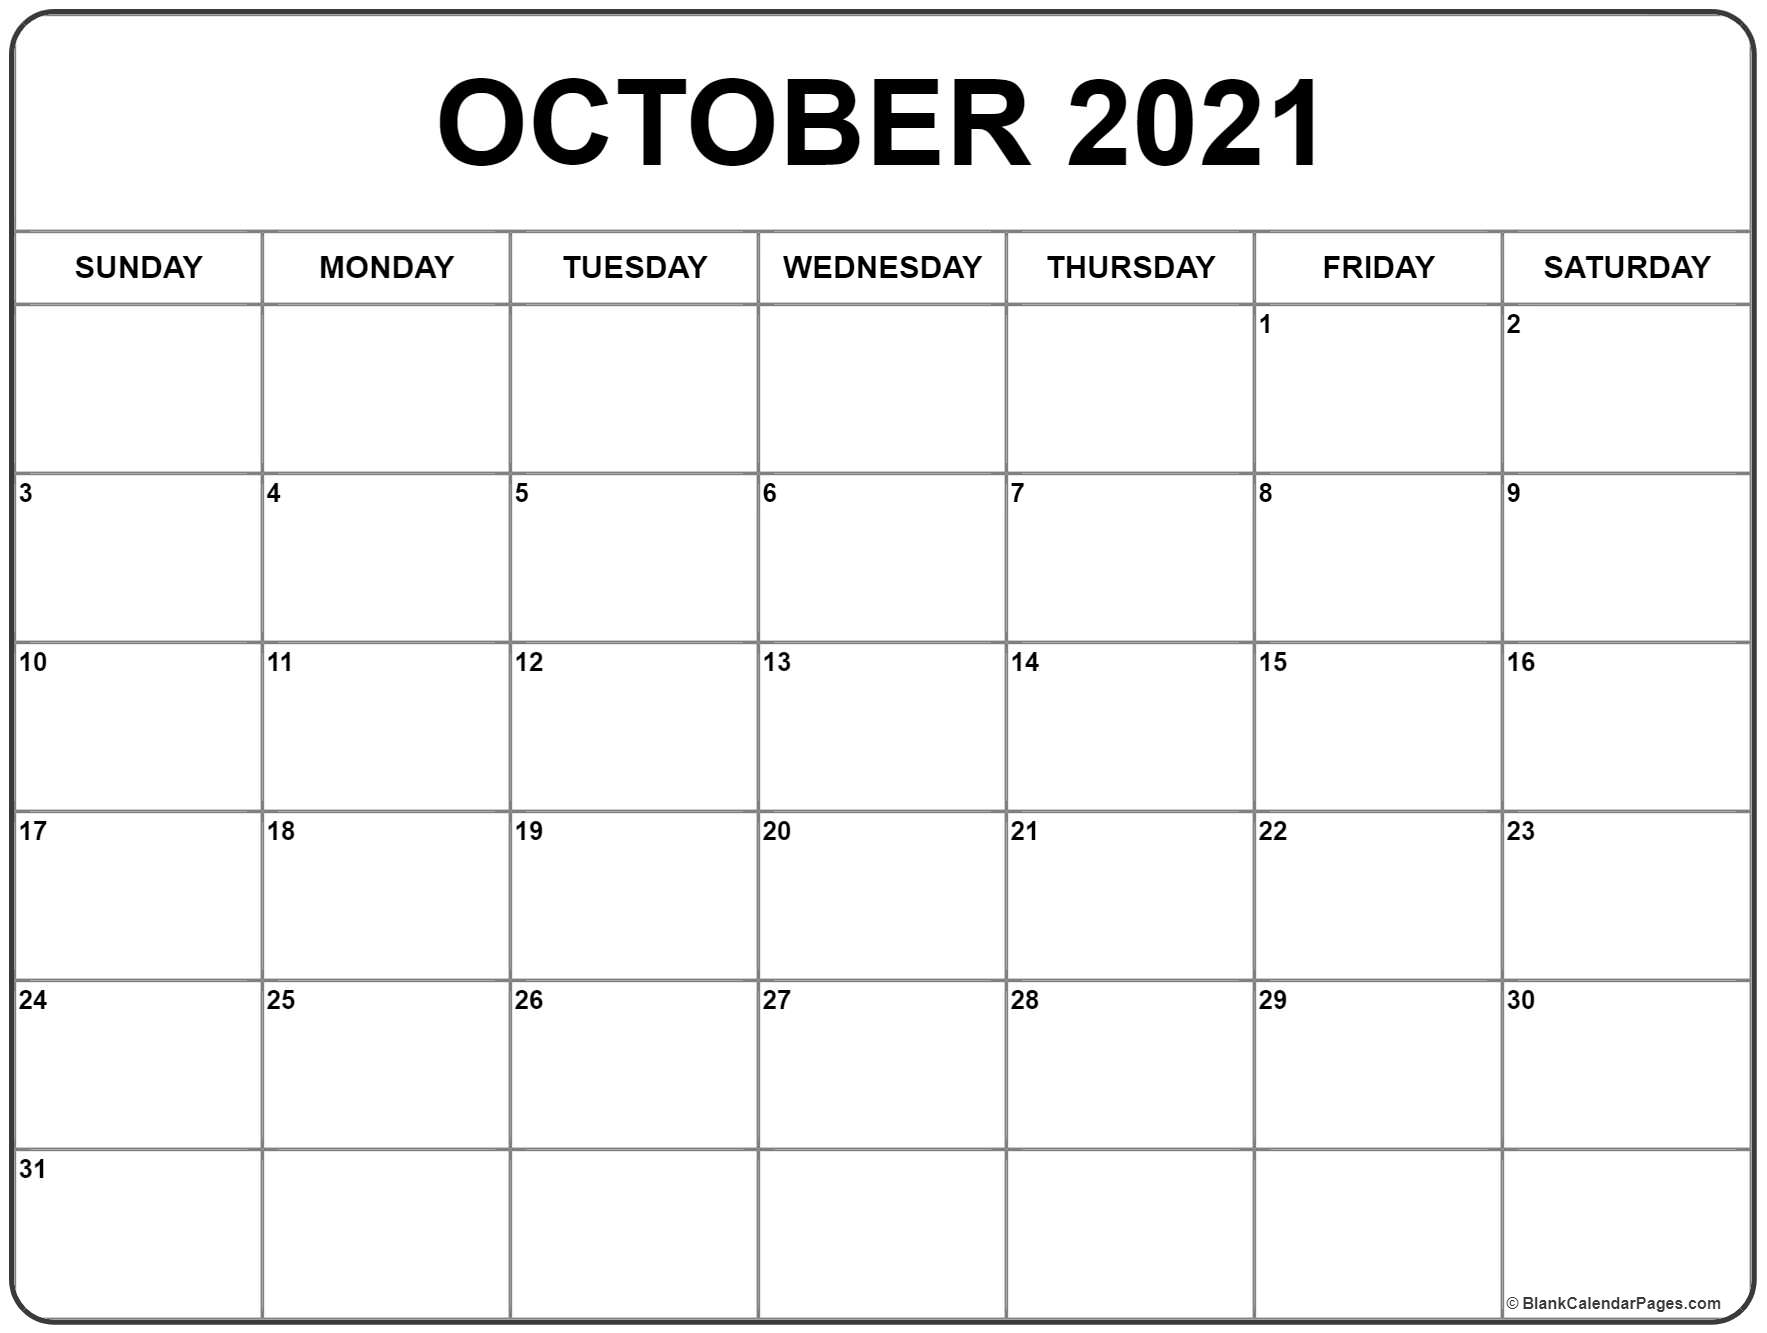 2020 Calendar October October 2020 calendar | free printable monthly calendars